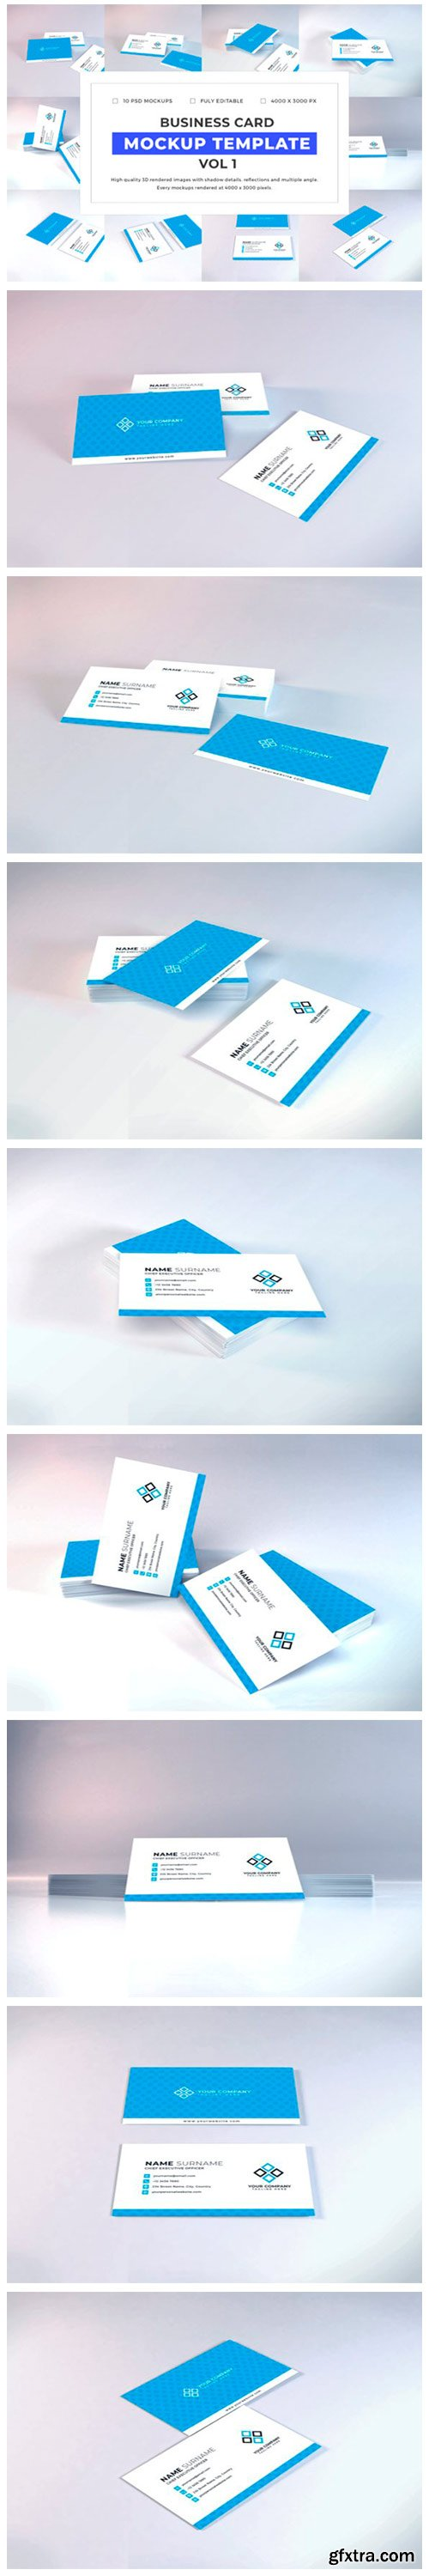 Business Card Mockup Bundle Vol 1 6702084